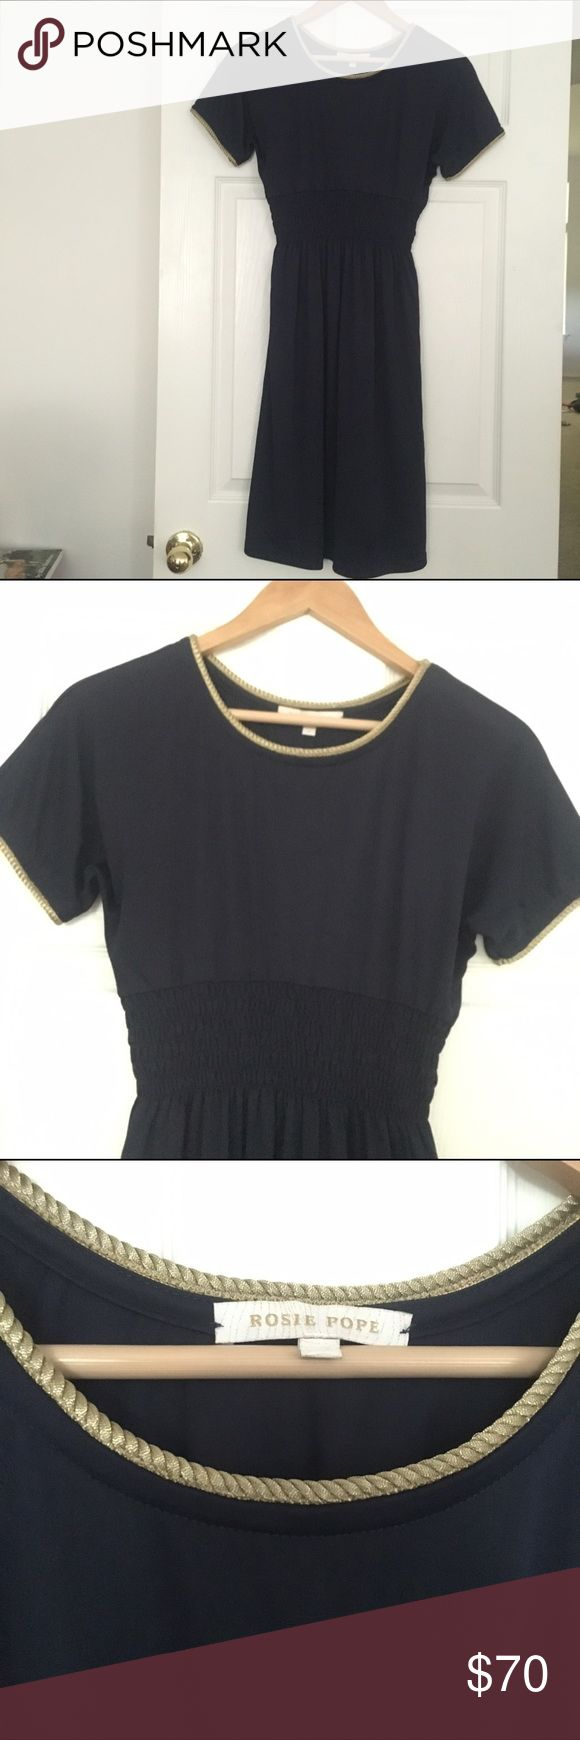 Rosie Pope Navy and Gold Maternity Dress Short sleeved dress with an elastic riches waist. It's navy with gold roping on the neckline and arms. This is one of my most favorite maternity dresses because you can wear it in any season. Looks great with heels, boots, sandals, flat and leggings. Rosie Pope makes beautiful pieces and this is no exception. Rosie Pope Dresses